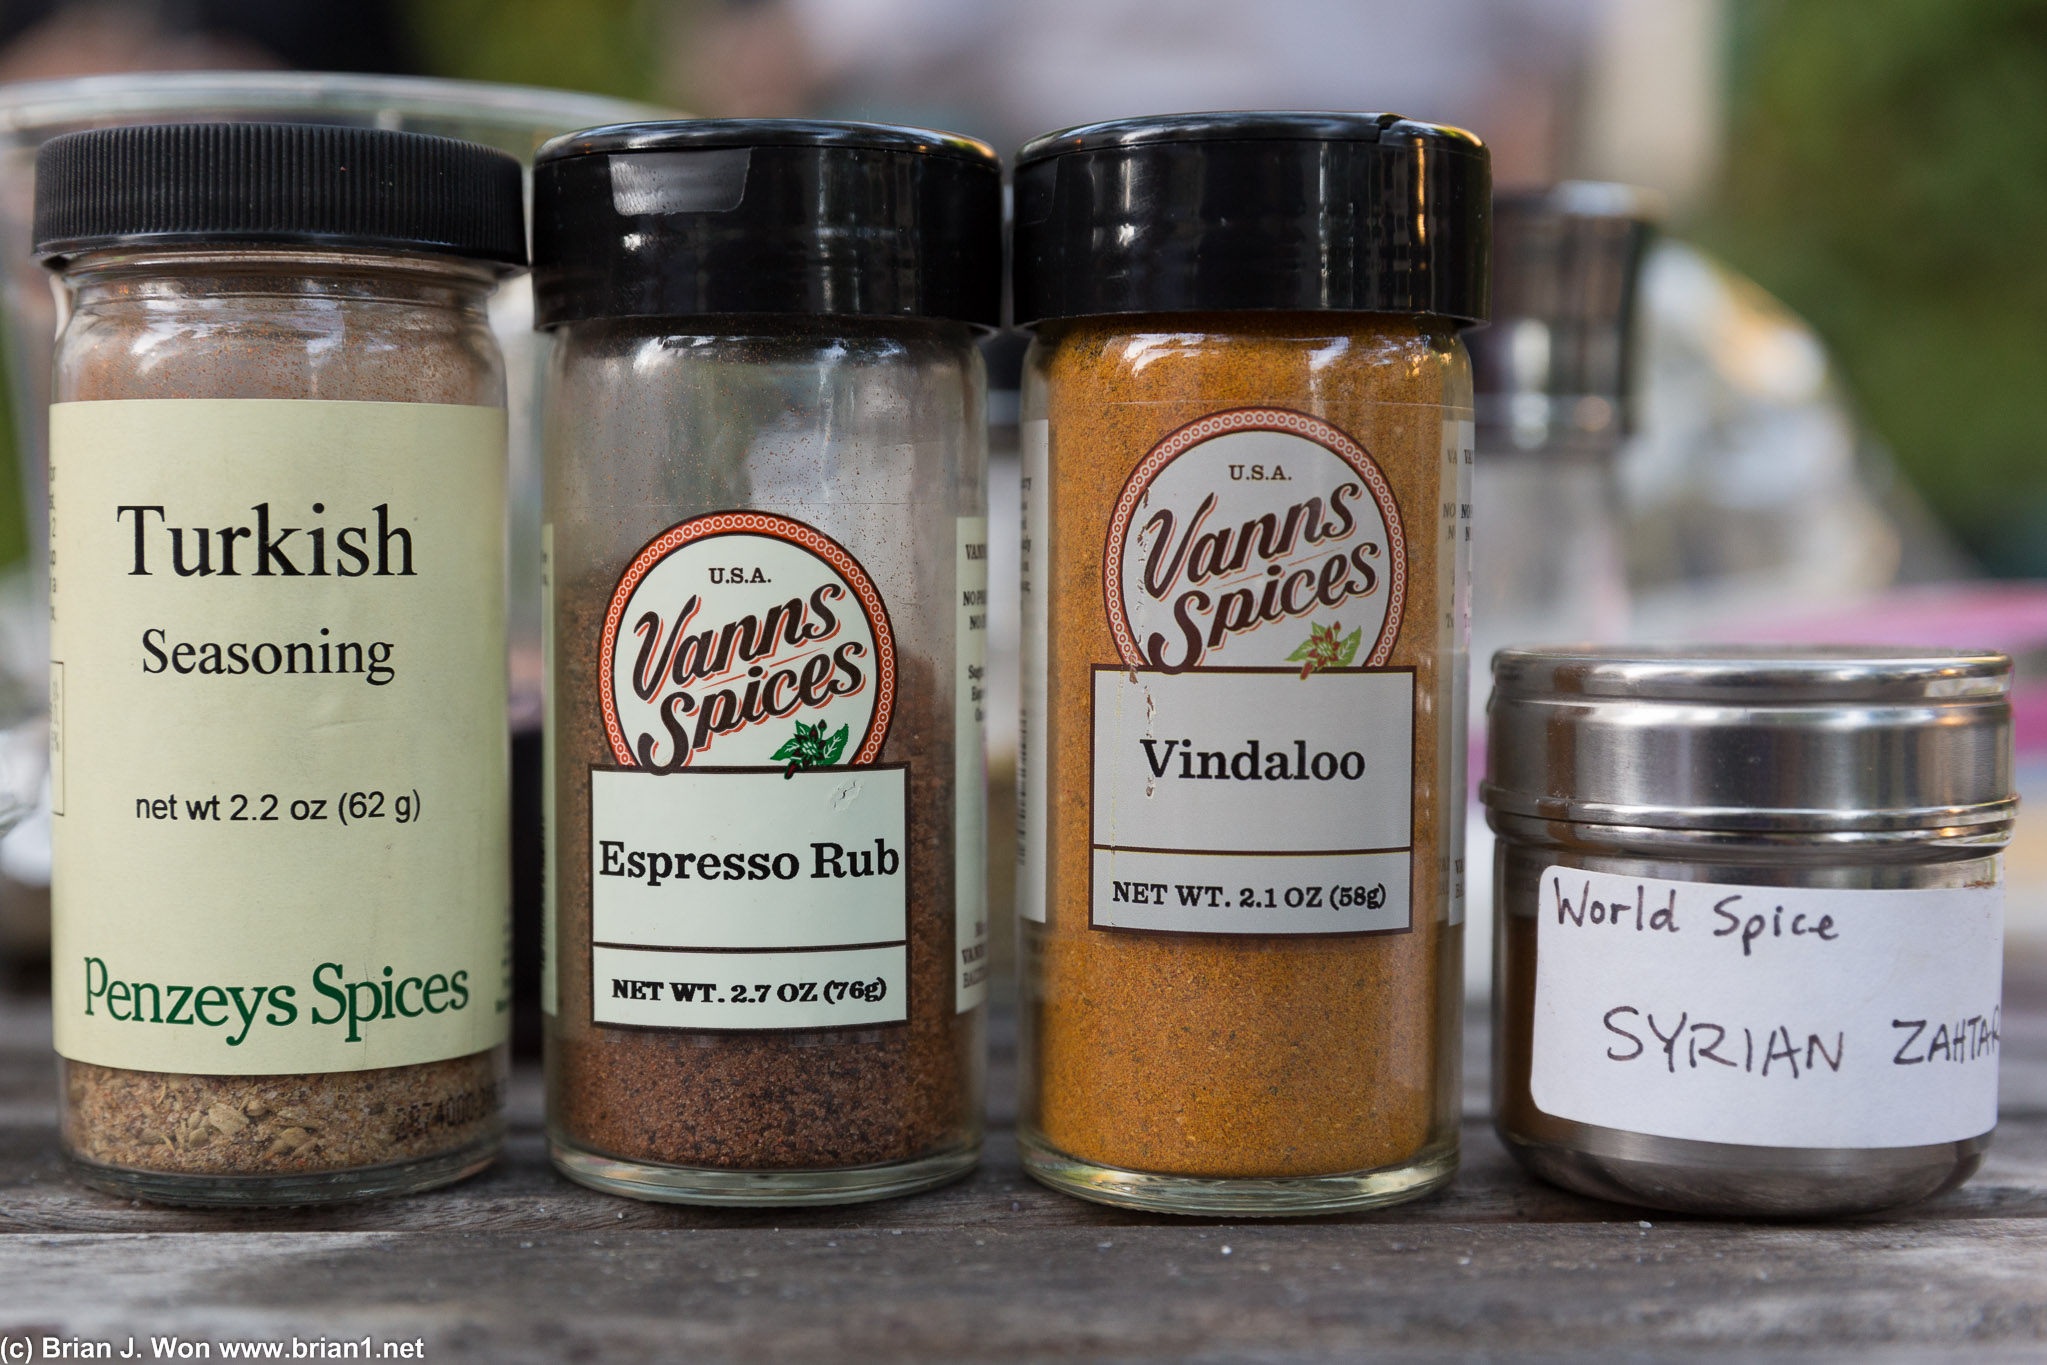 Professor Moore's spice collection